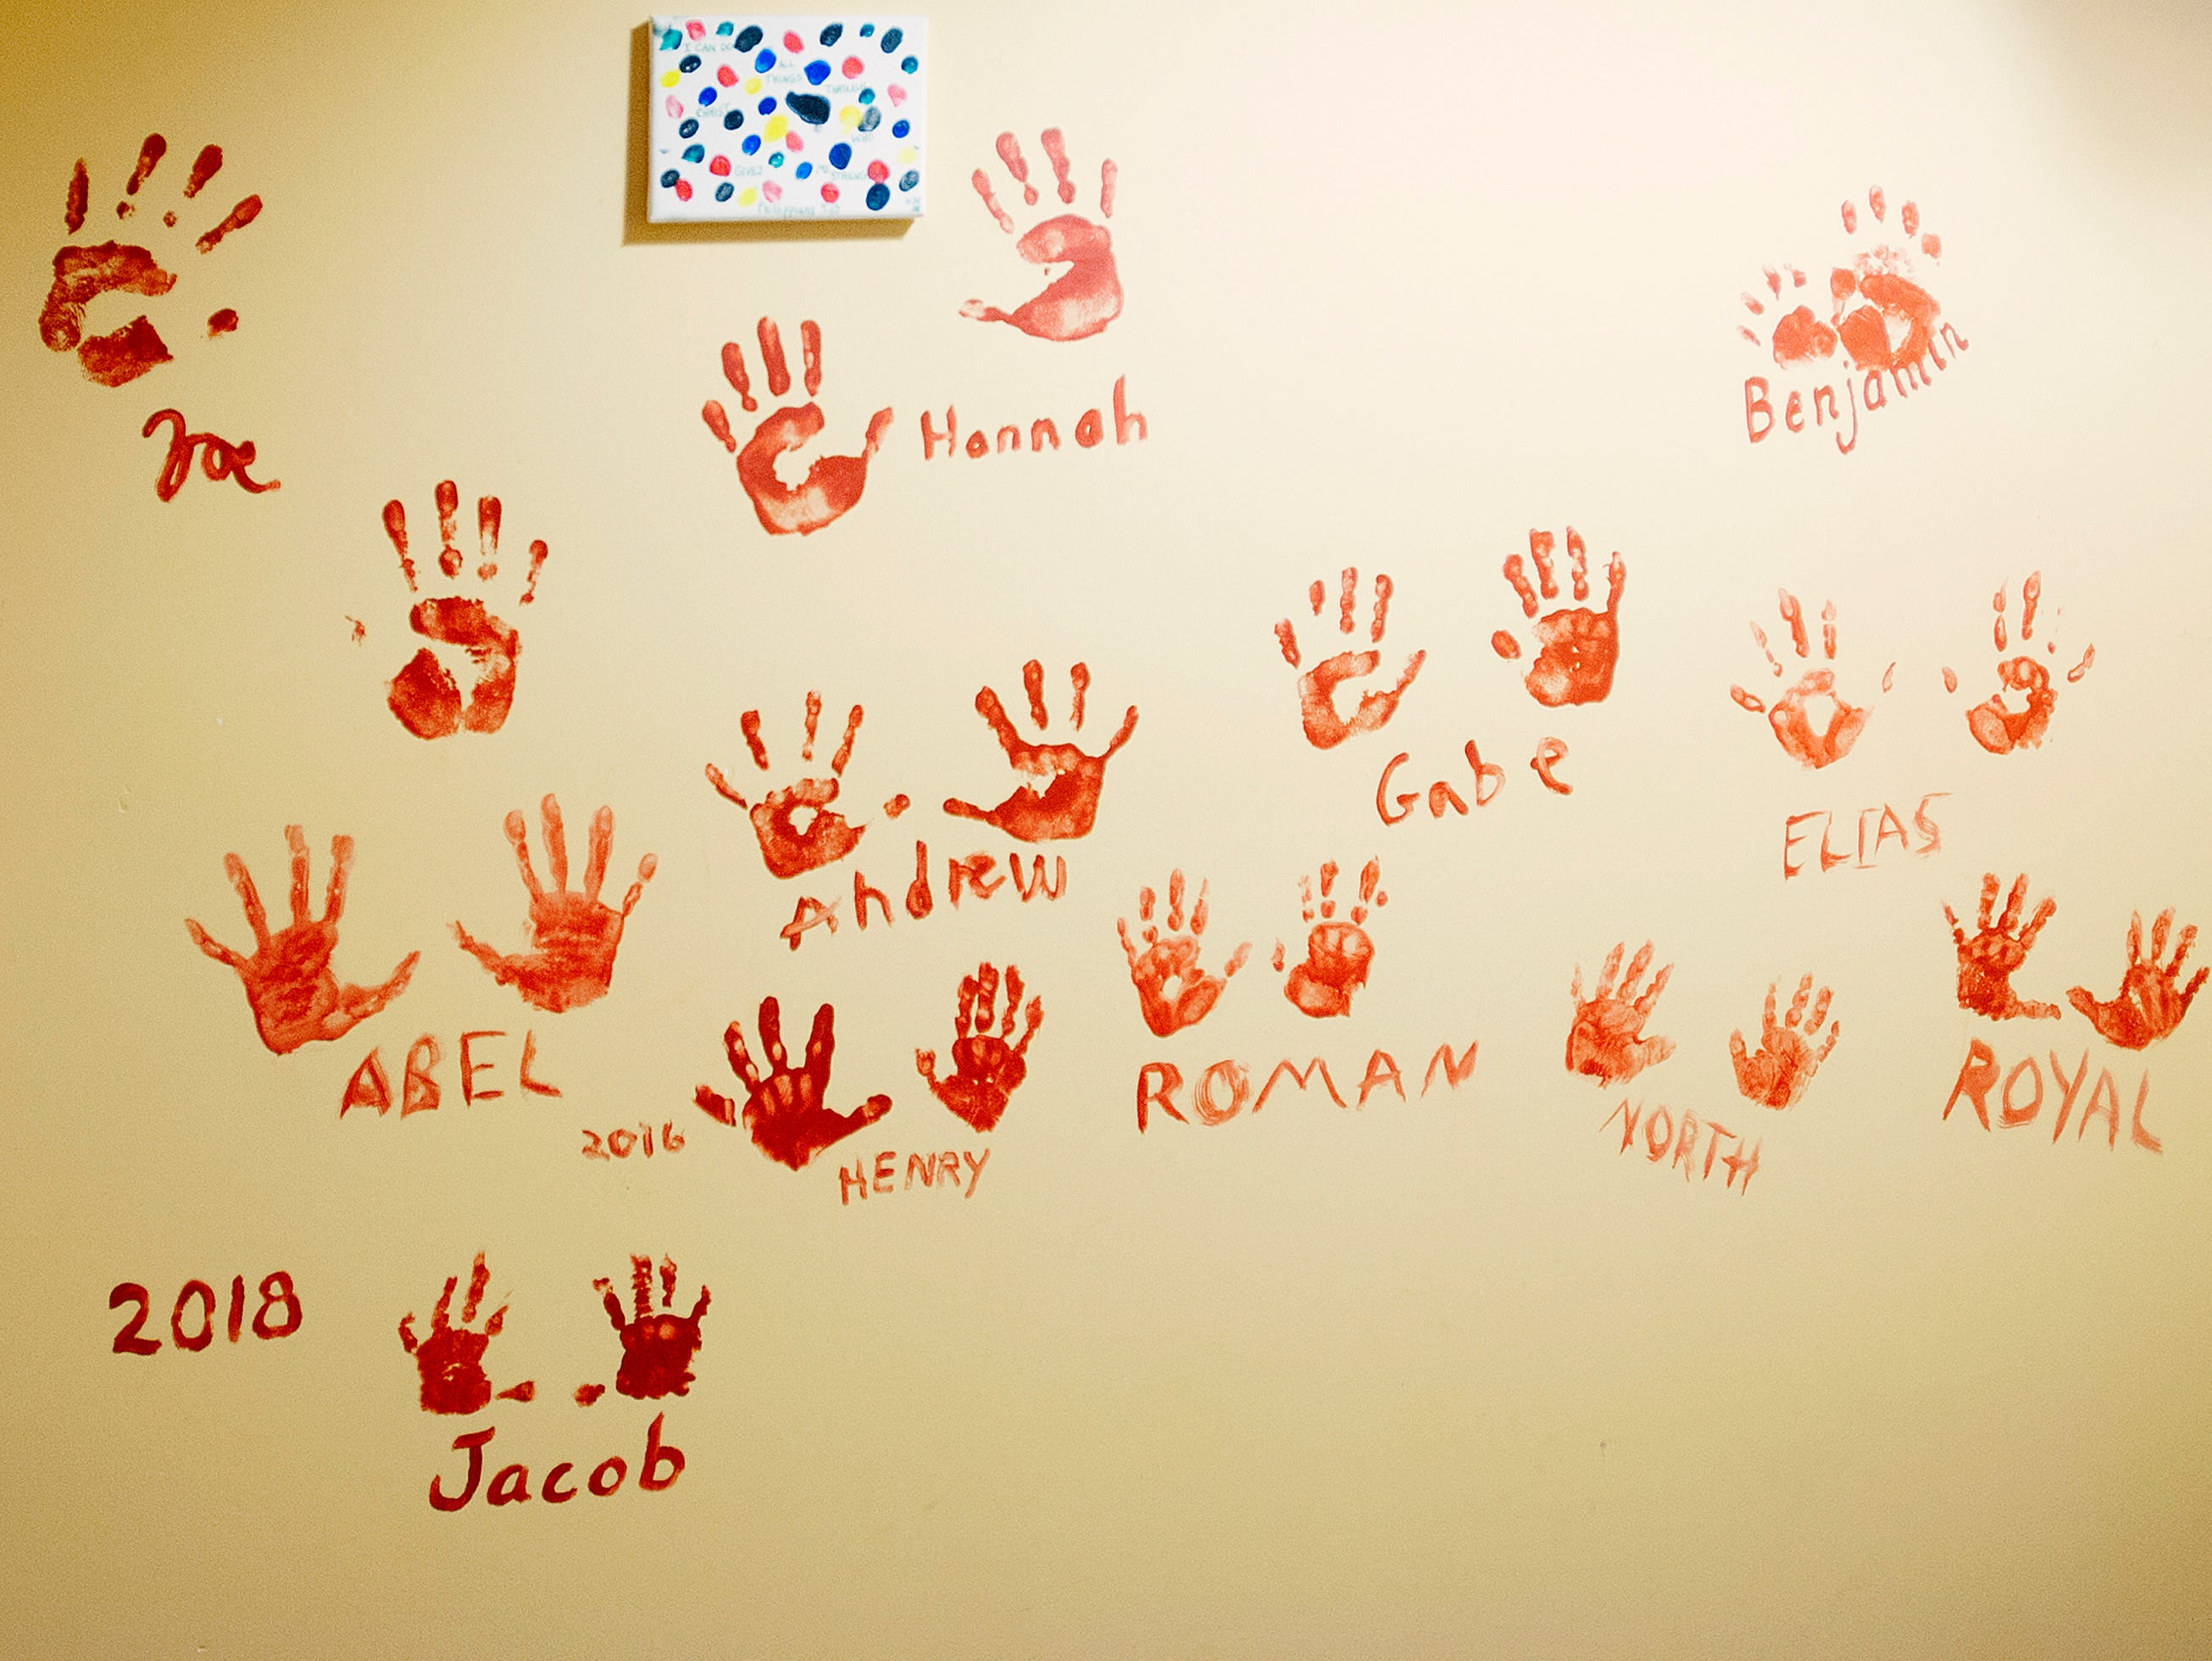 At the foot of the basement stairs, the Deebs keep a record of the handprints of all their grandchildren. 